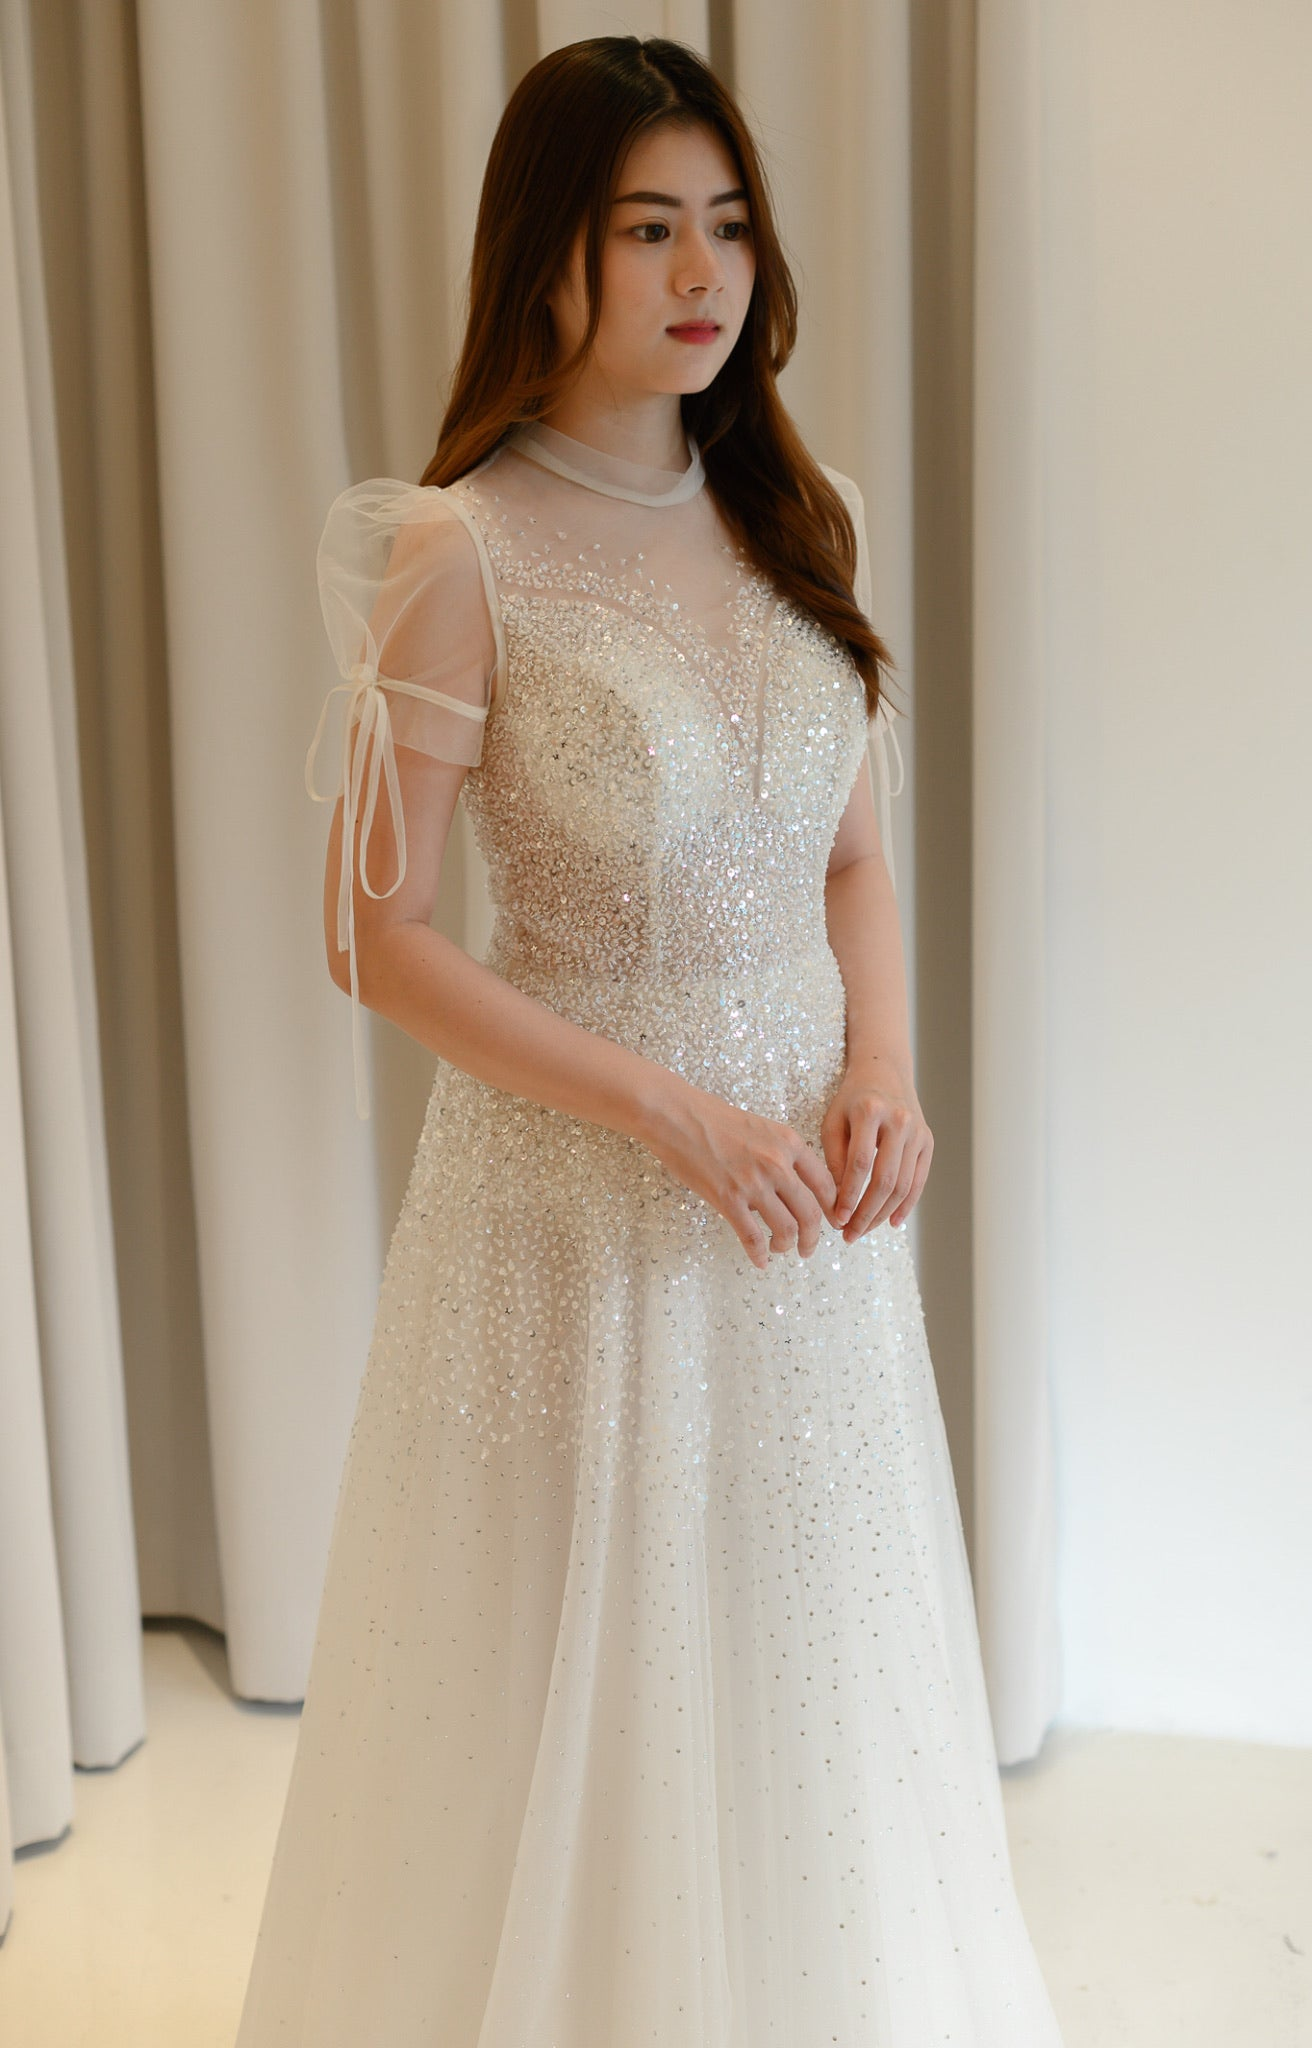 Charlotte Crystal White Puffy Sleeve Gown